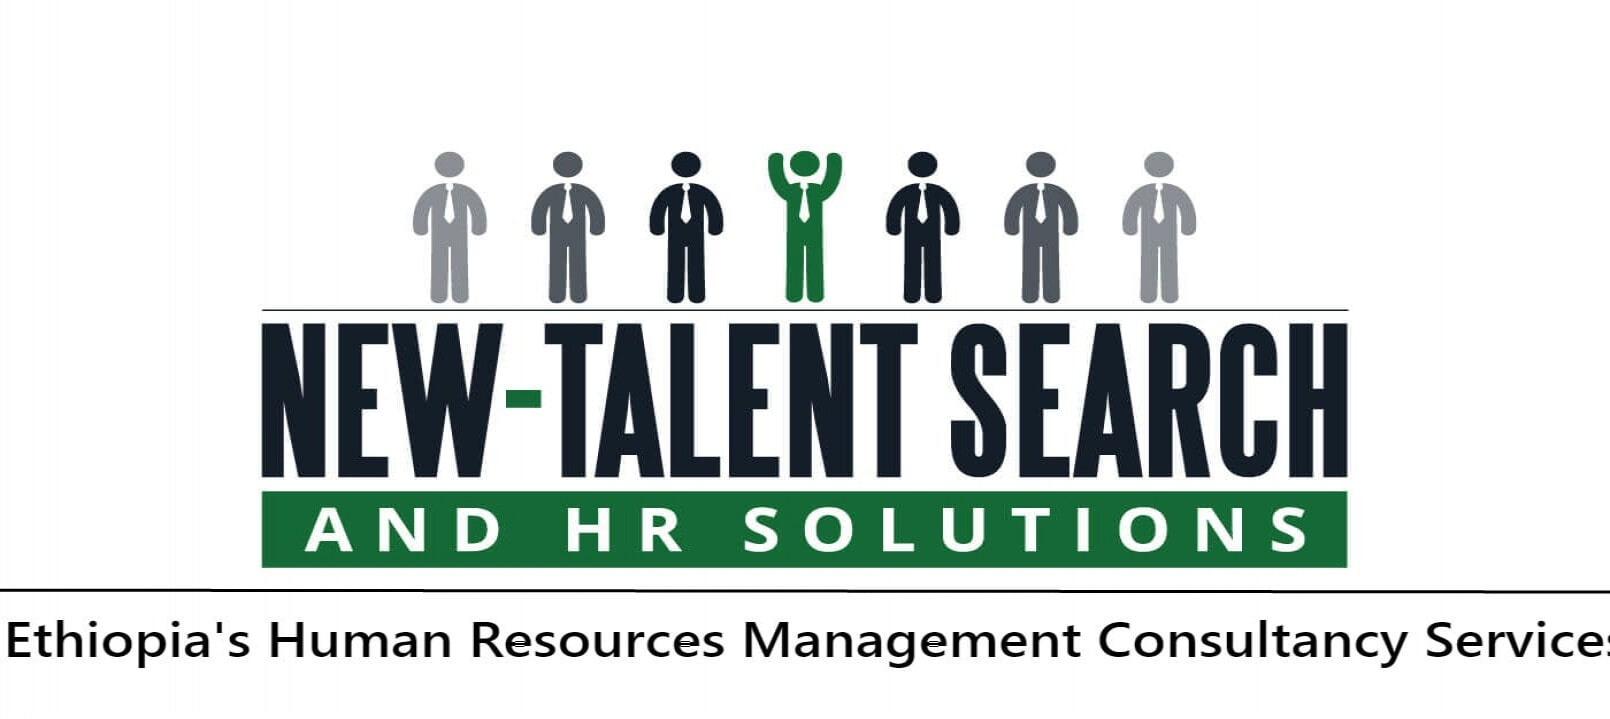 ETHIO NEW TALENT SEARCH AND HUMAN RESOURCE SOLUTION Plc.